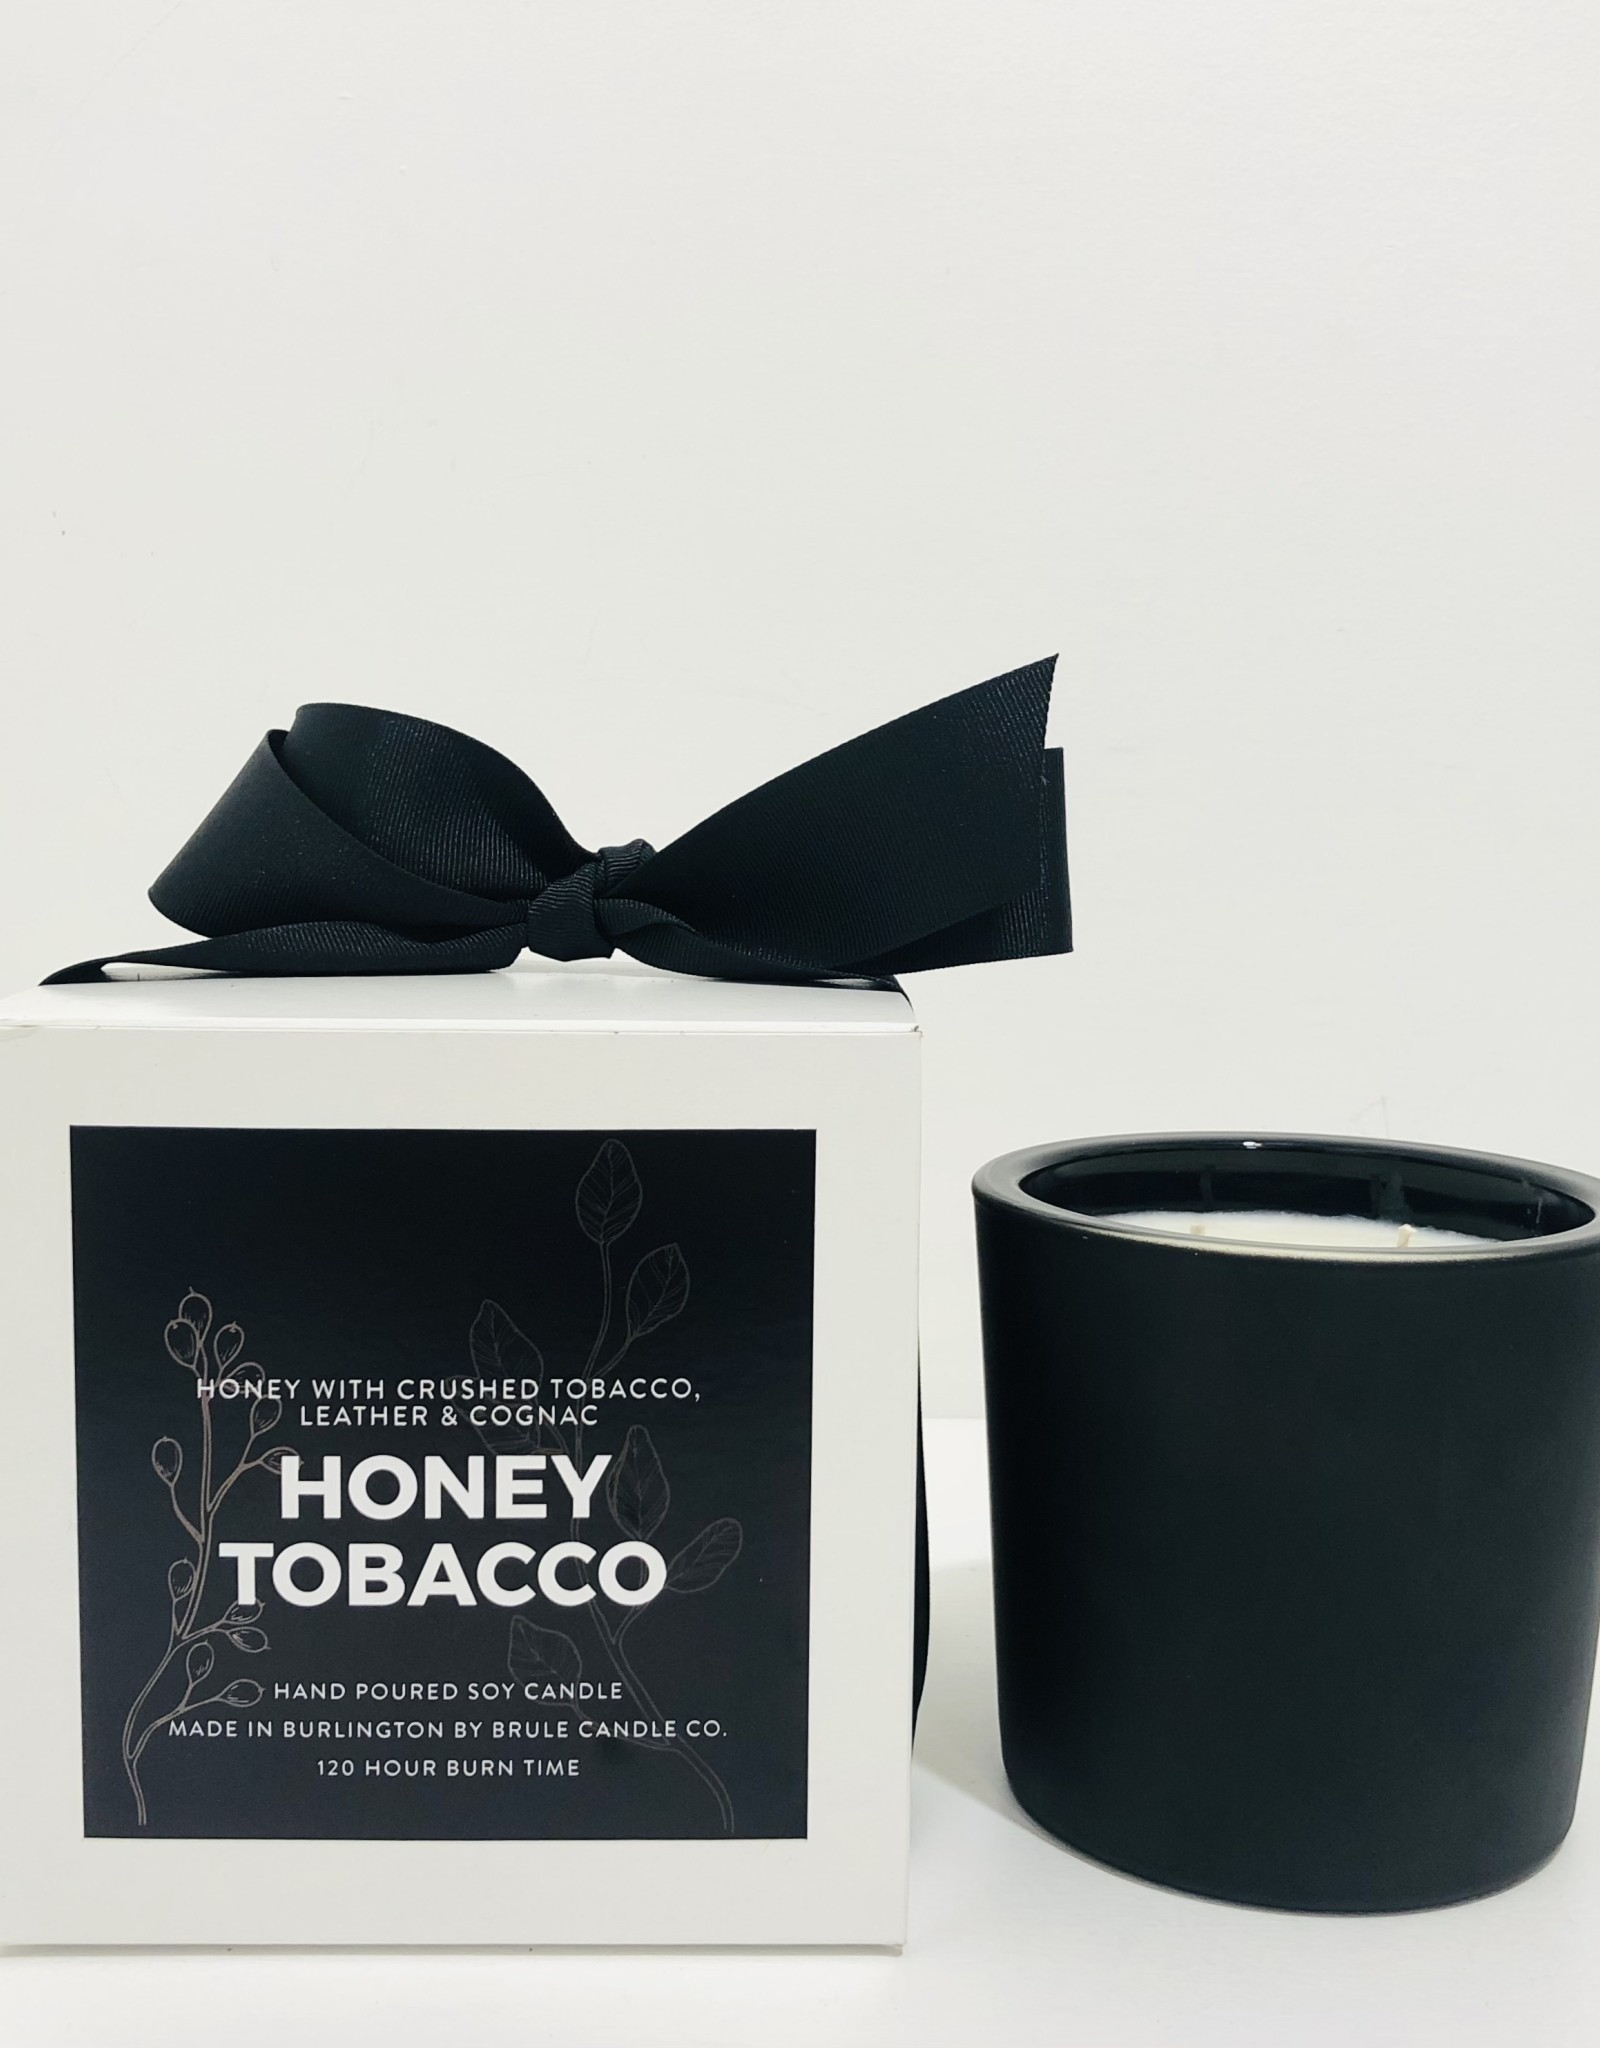 Brule Honey Tobacco 2 Wick Candle